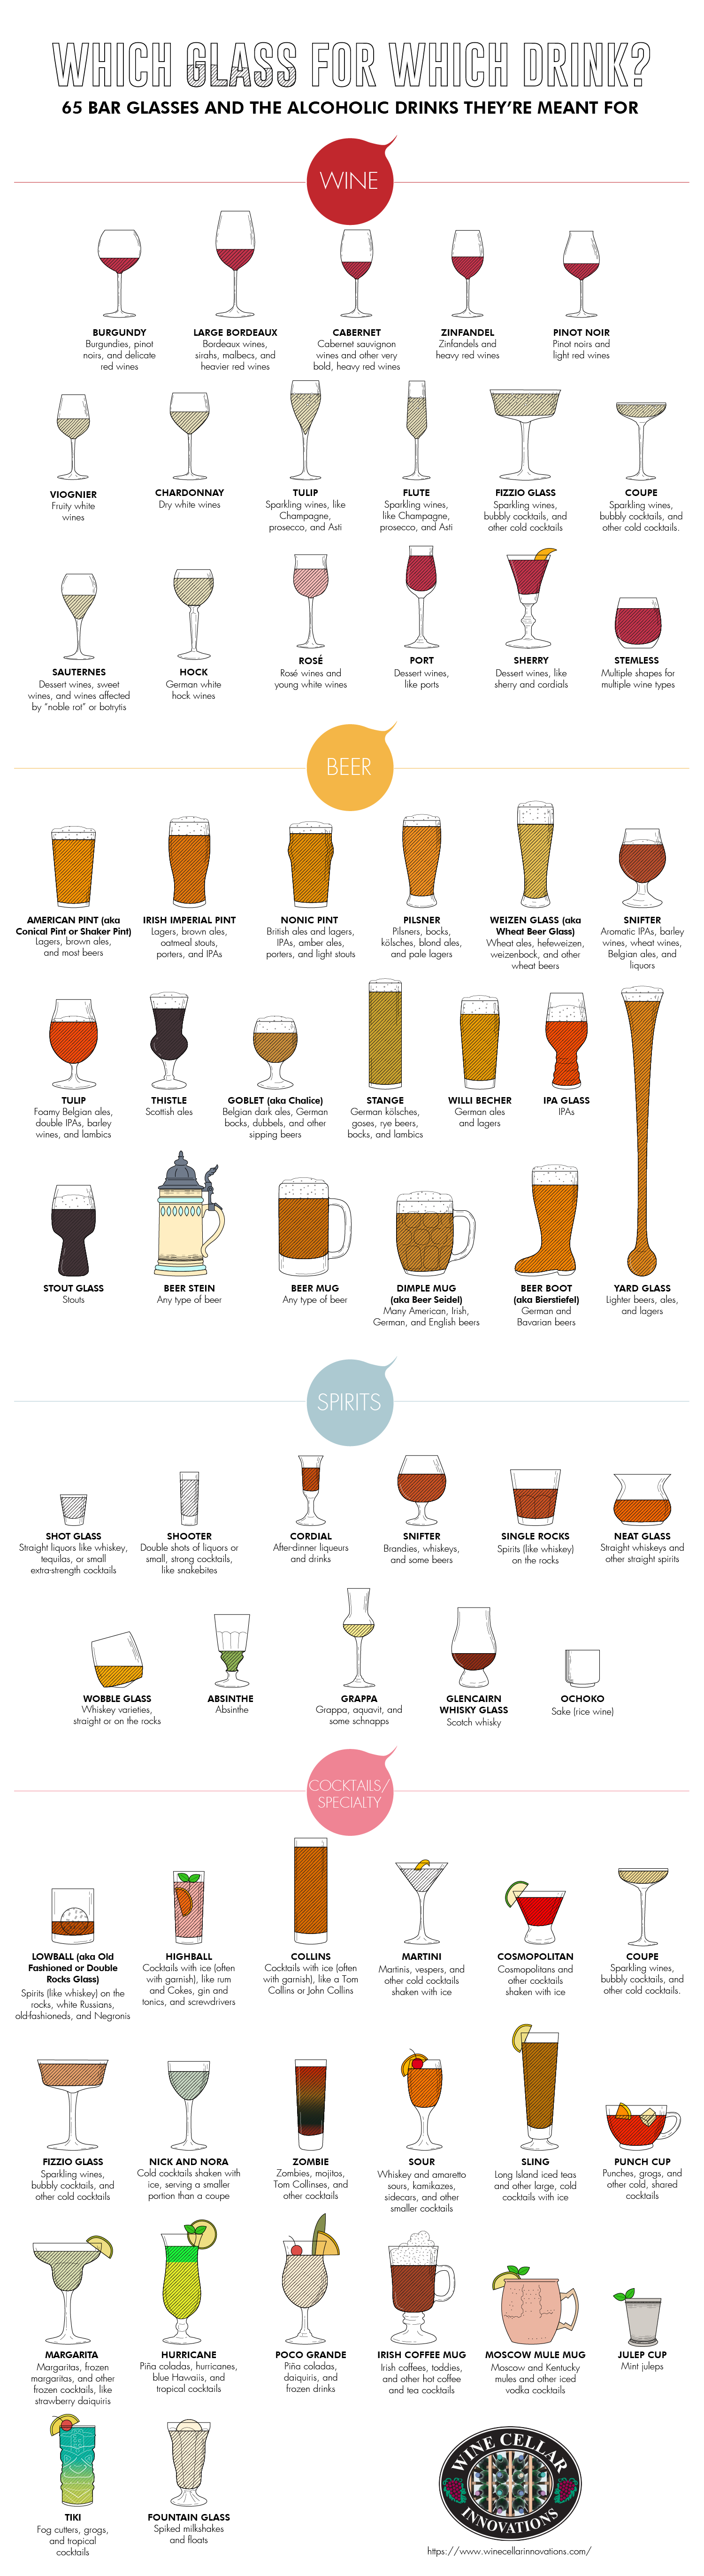 Which Glass for Which Drink: 65 Bar Glasses and What They're Meant For #infographic